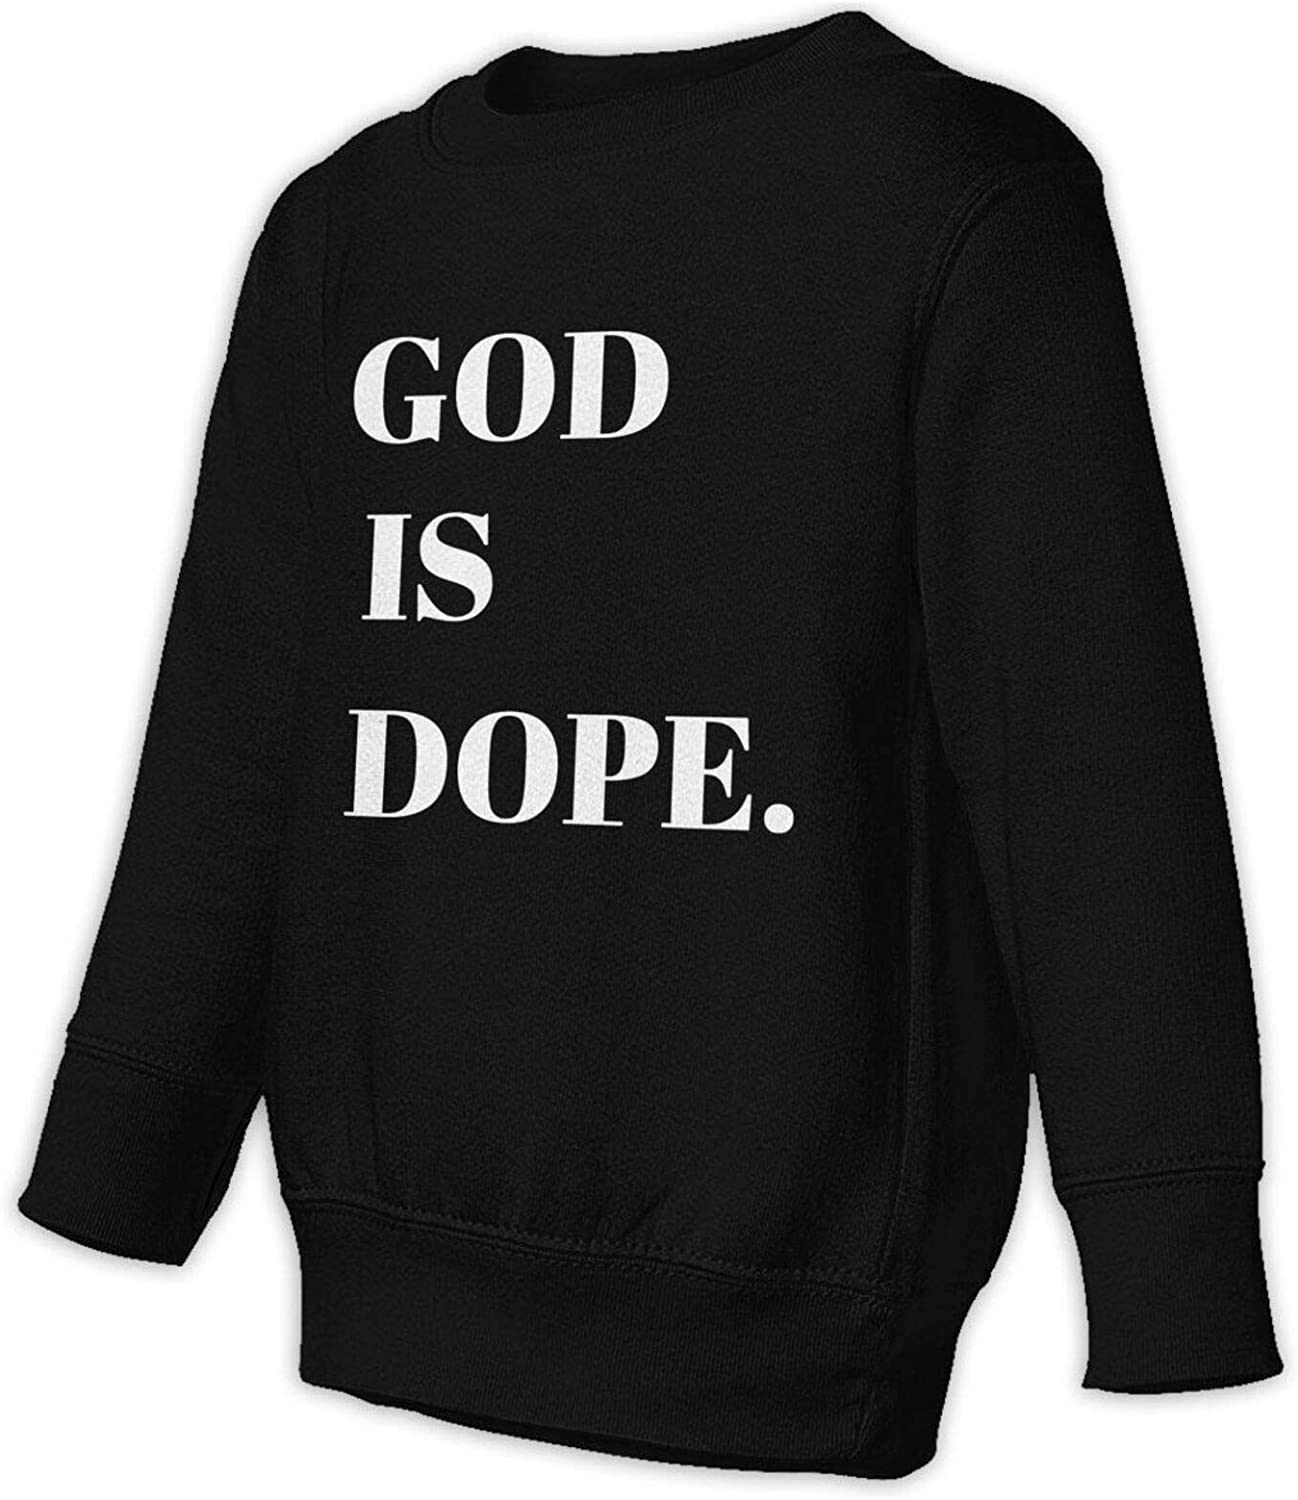 God Is Dope Kids Round Neck Fall Casual Baby Manufacturer OFFicial shop For Today's only Bo Sweater Tops